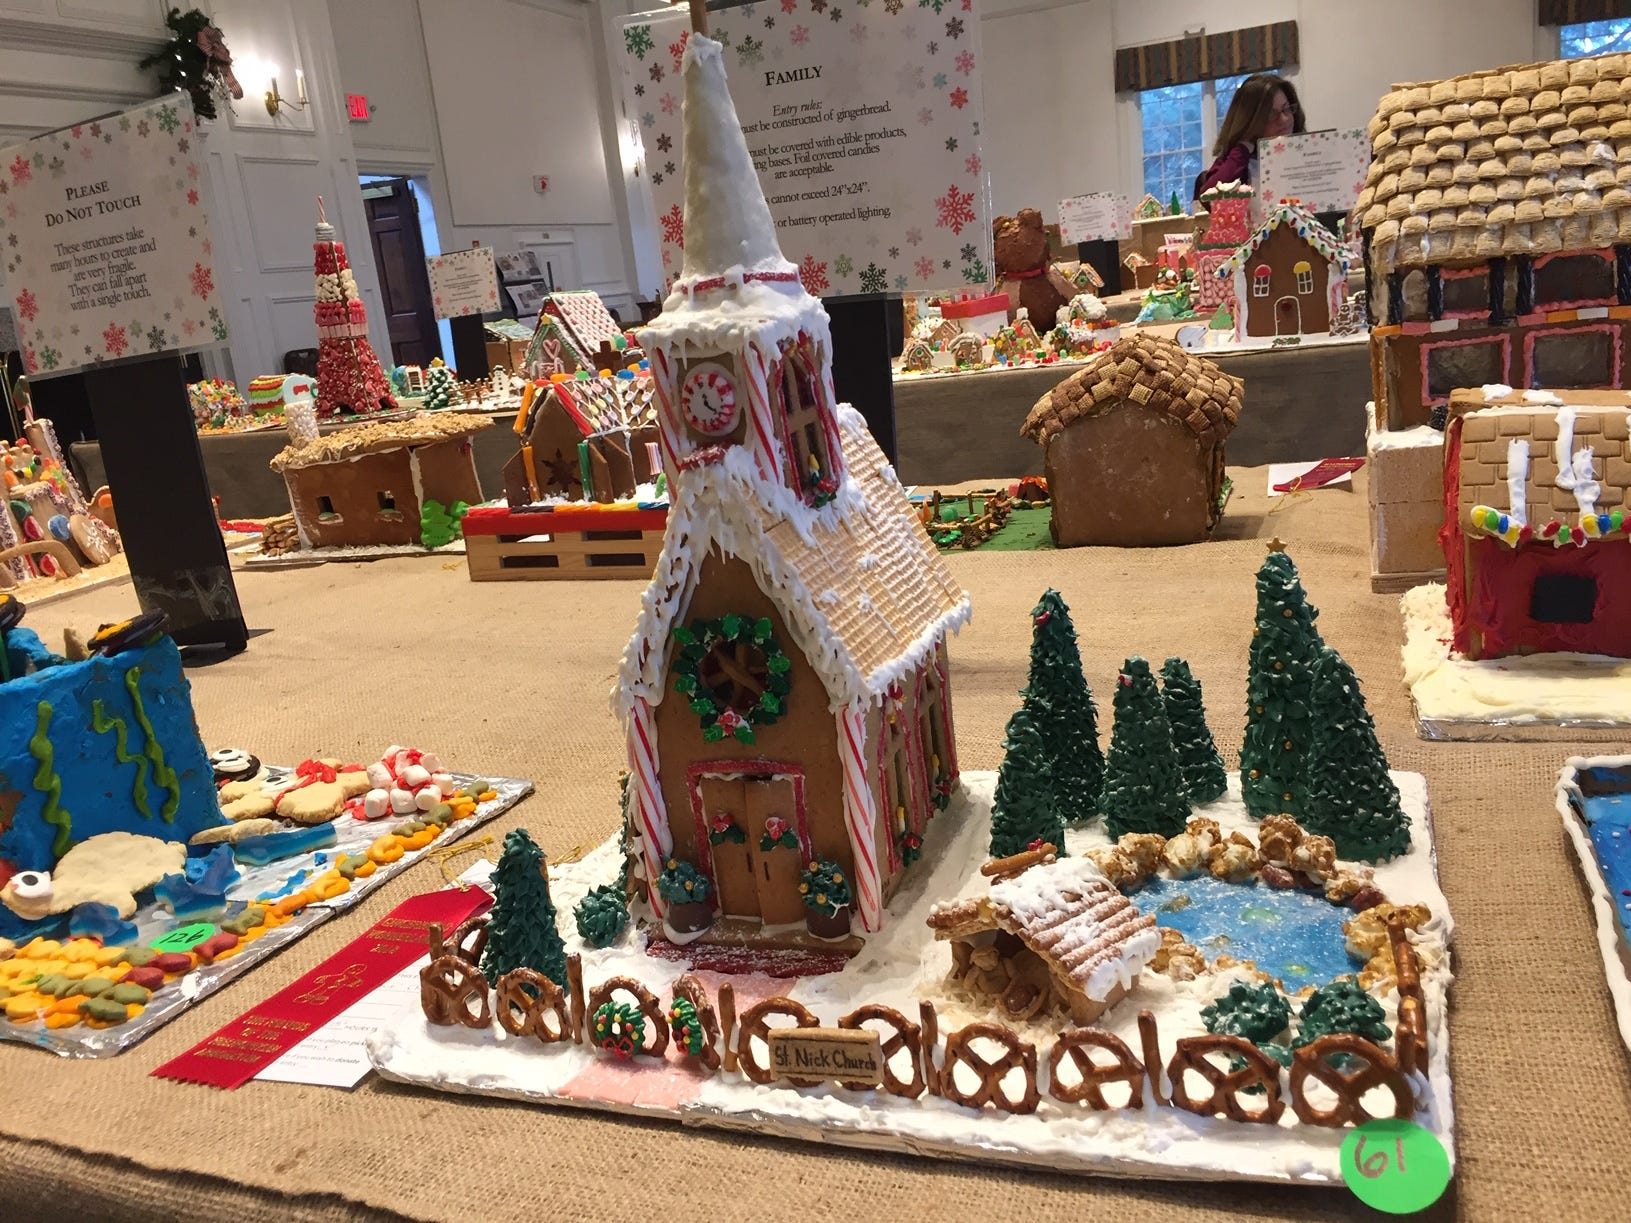 """St. Nick Church"" 'by Richdale/Stellingwerf Family of Westfield at the 2018 Gingerbread Wonderland at the Frelinghuysen Arboretum. Family category."